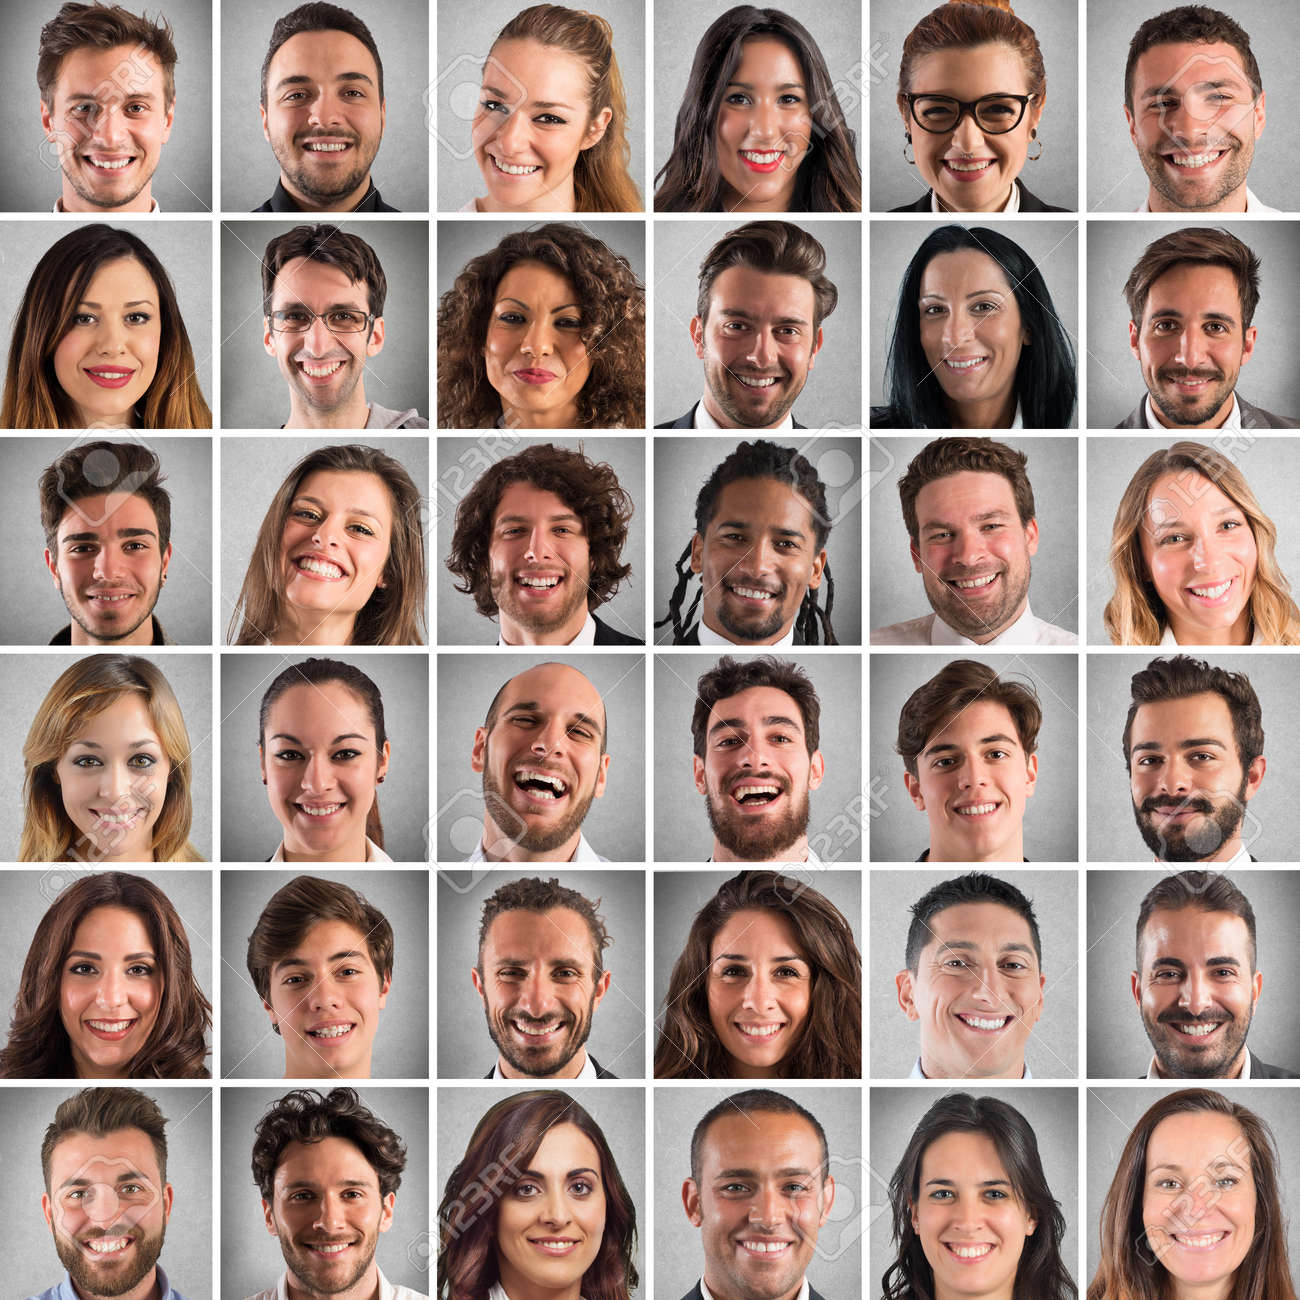 Collage of smiling faces of men and women Standard-Bild - 59132386